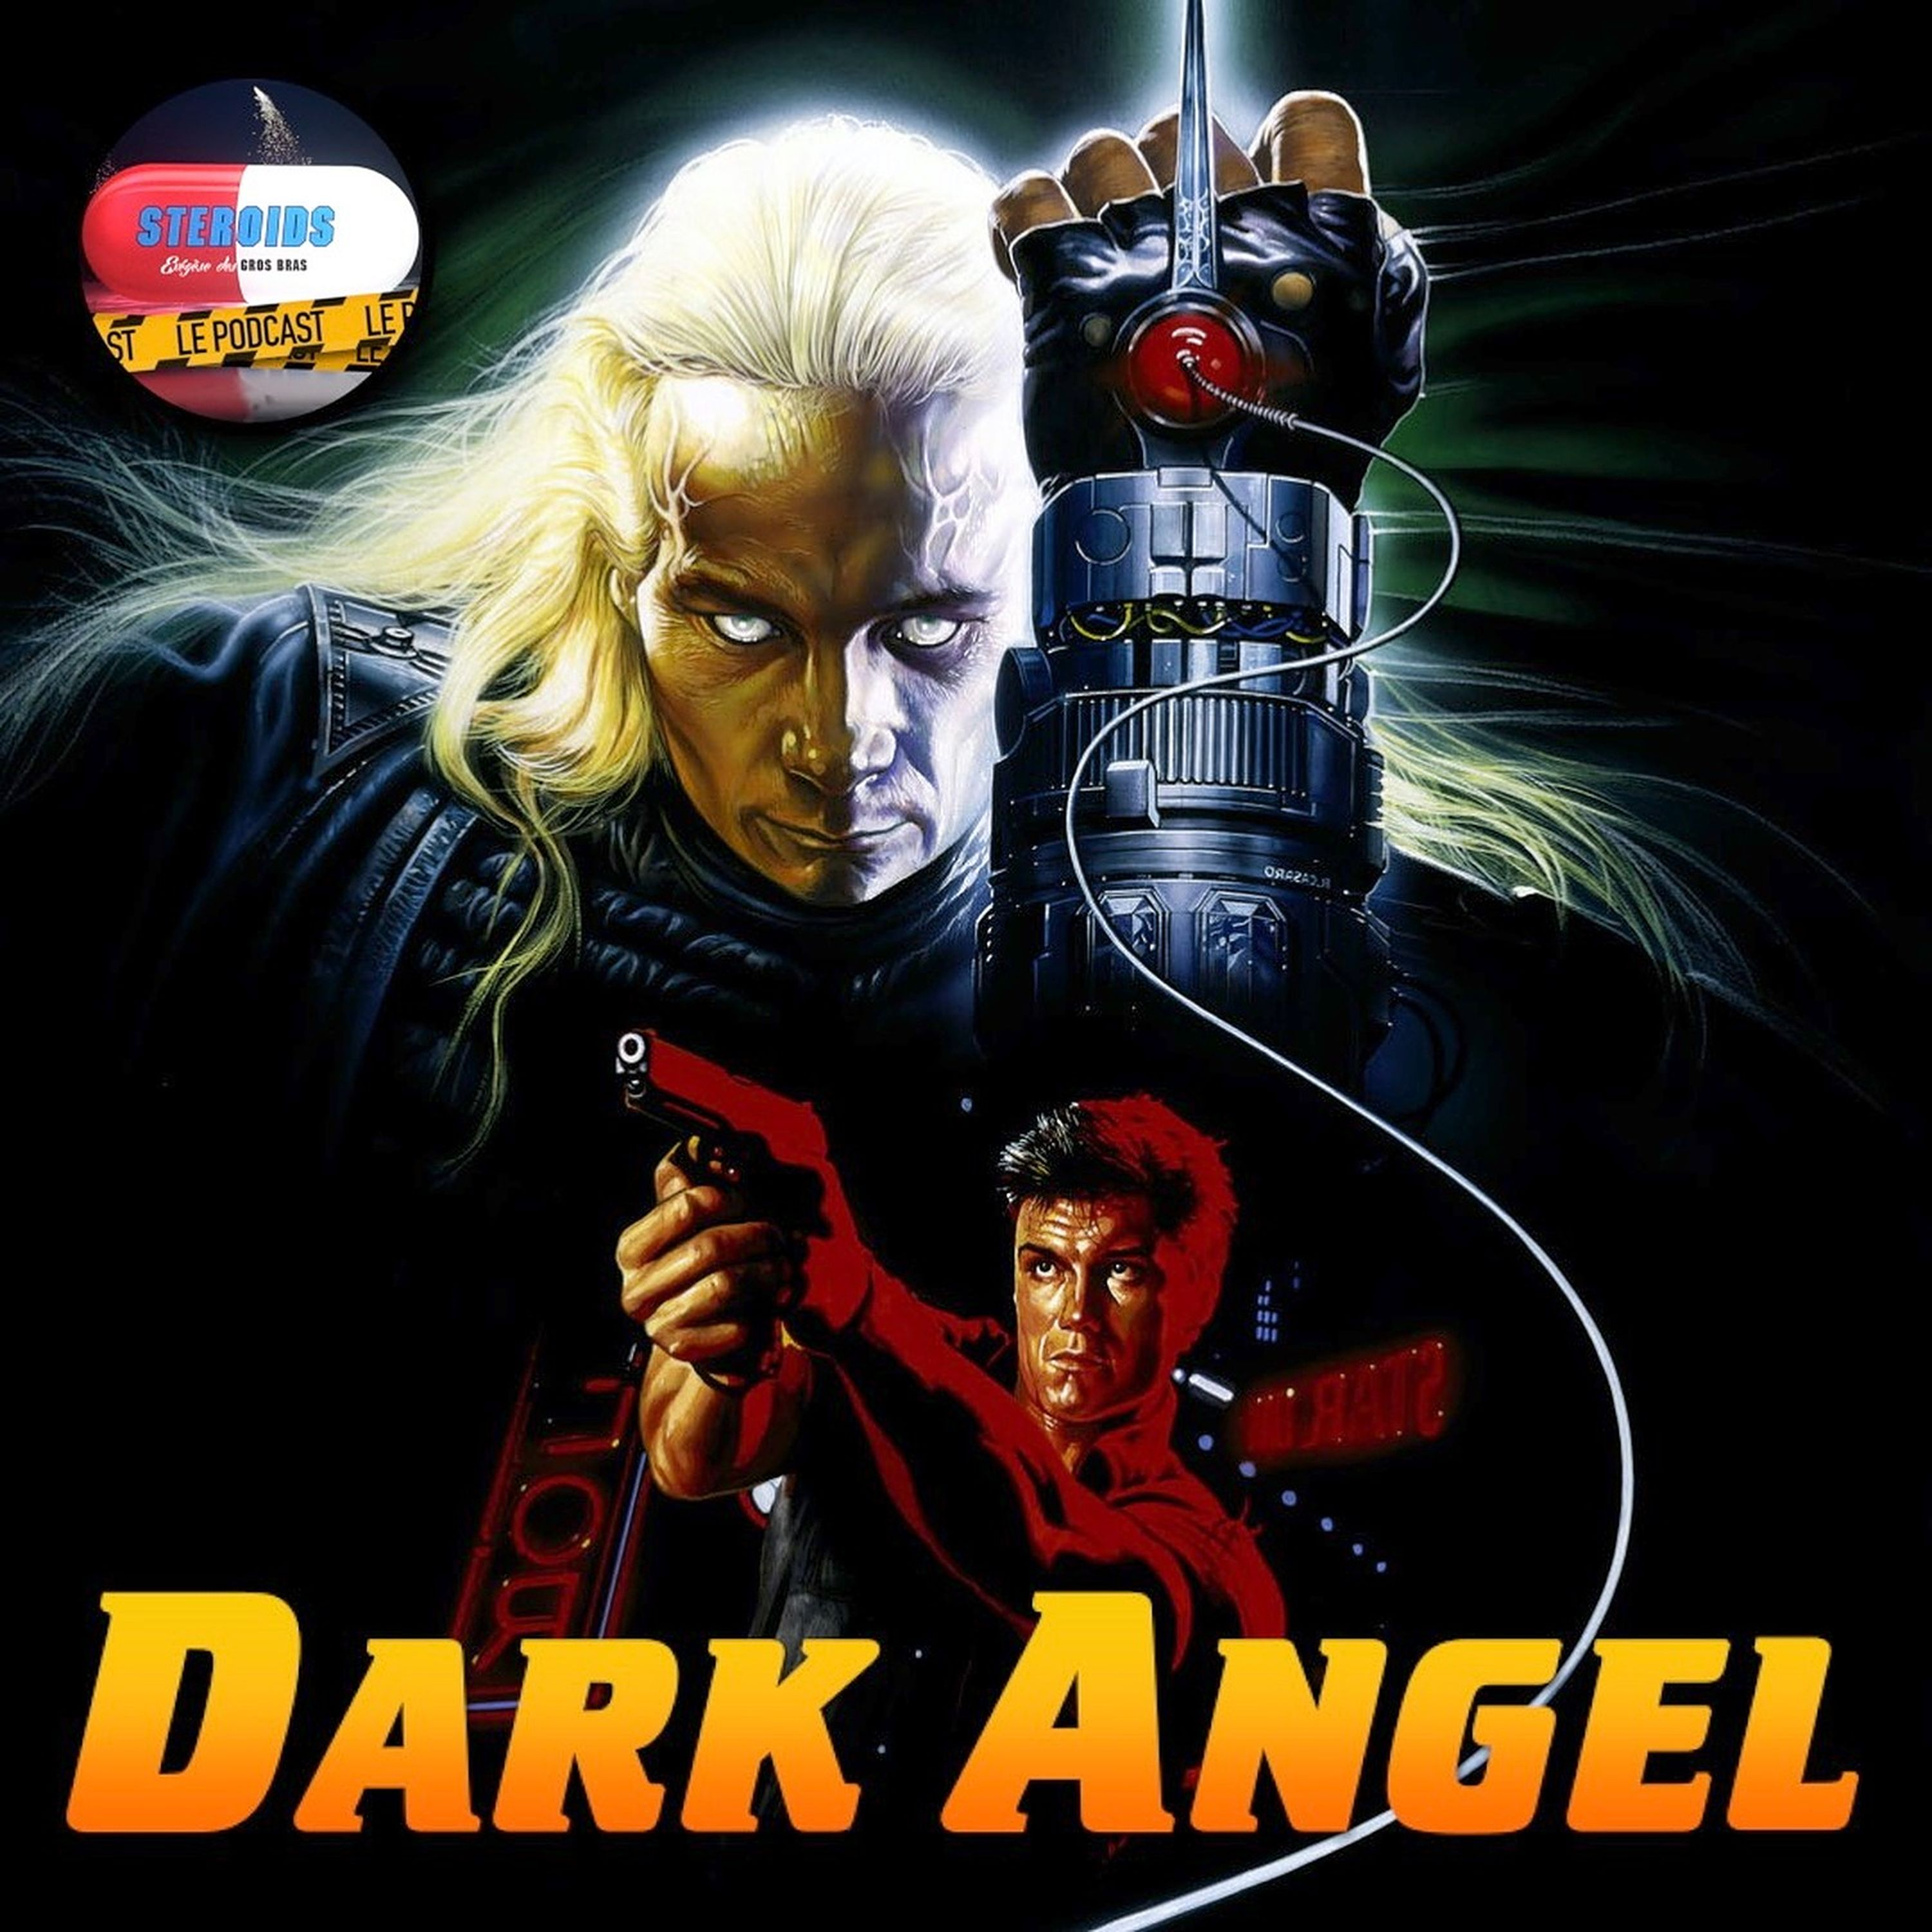 STEROIDS - LE PODCAST : DARK ANGEL